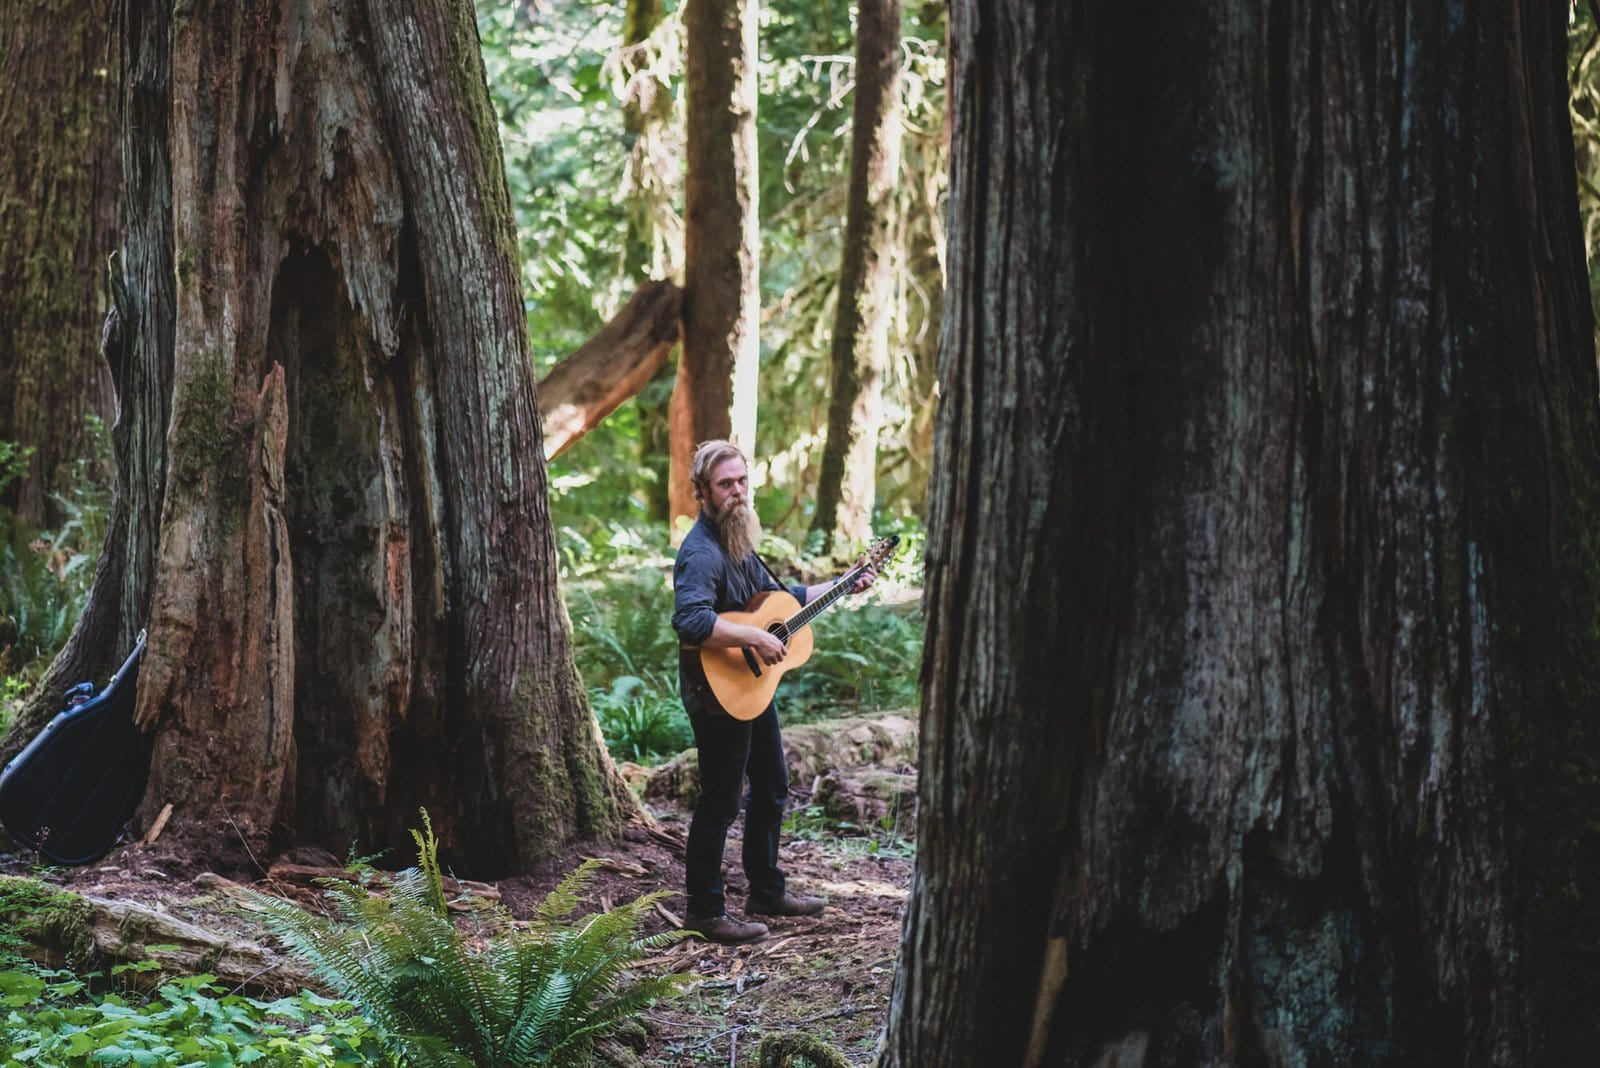 guitar player for intimate forest wedding.